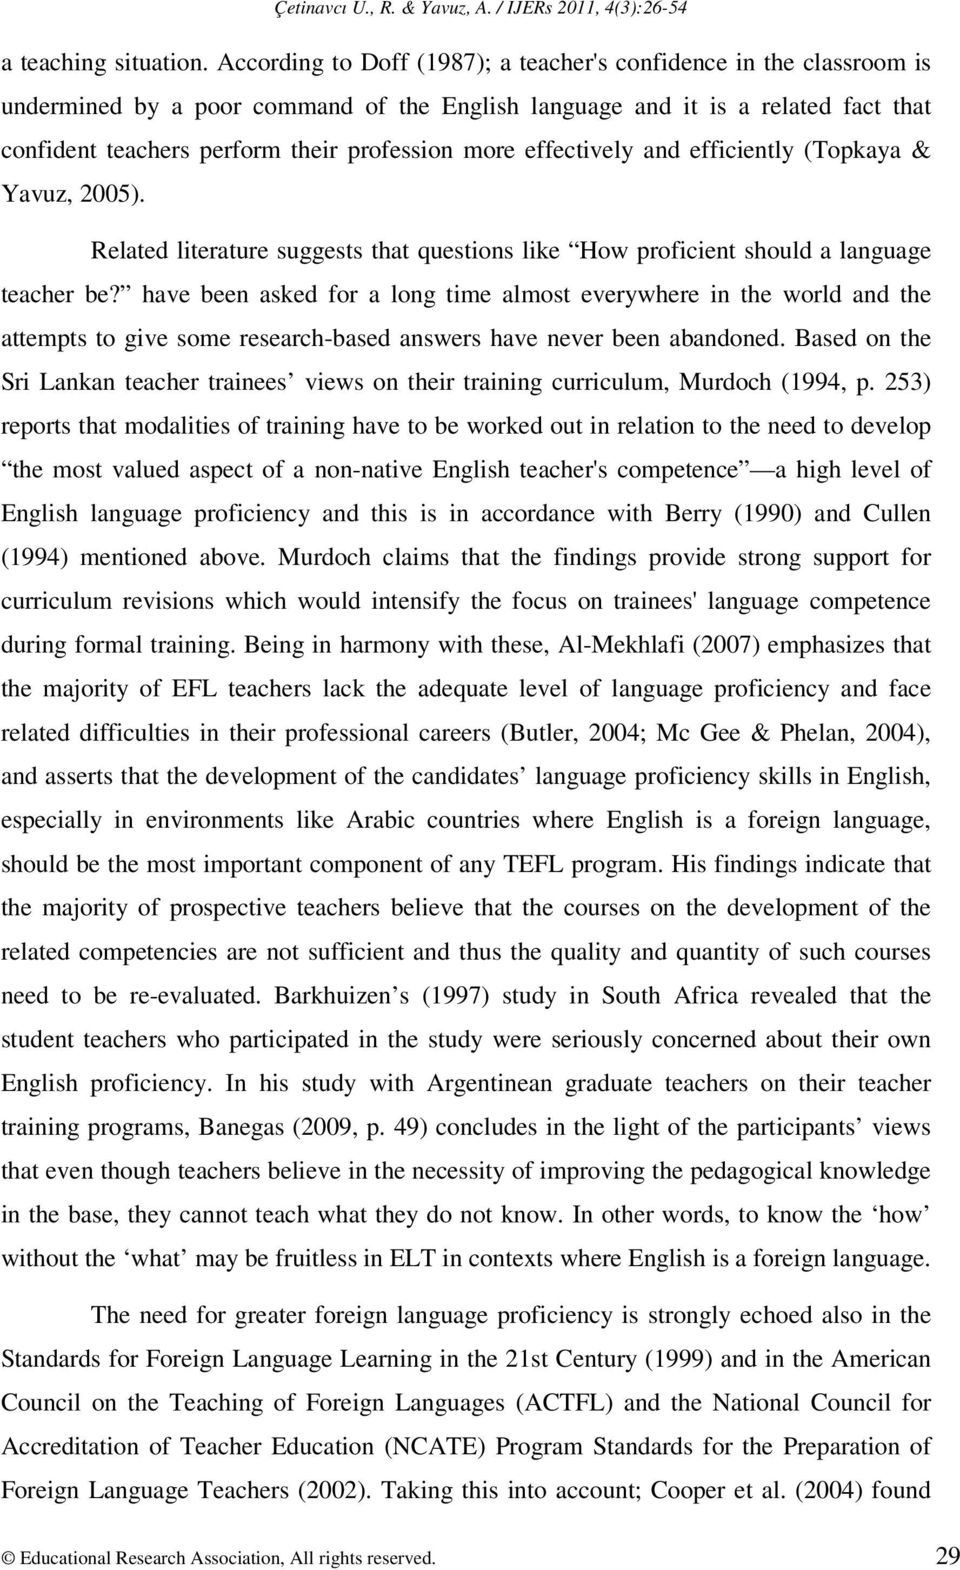 more effectively and efficiently (Topkaya & Yavuz, 2005). Related literature suggests that questions like How proficient should a language teacher be?